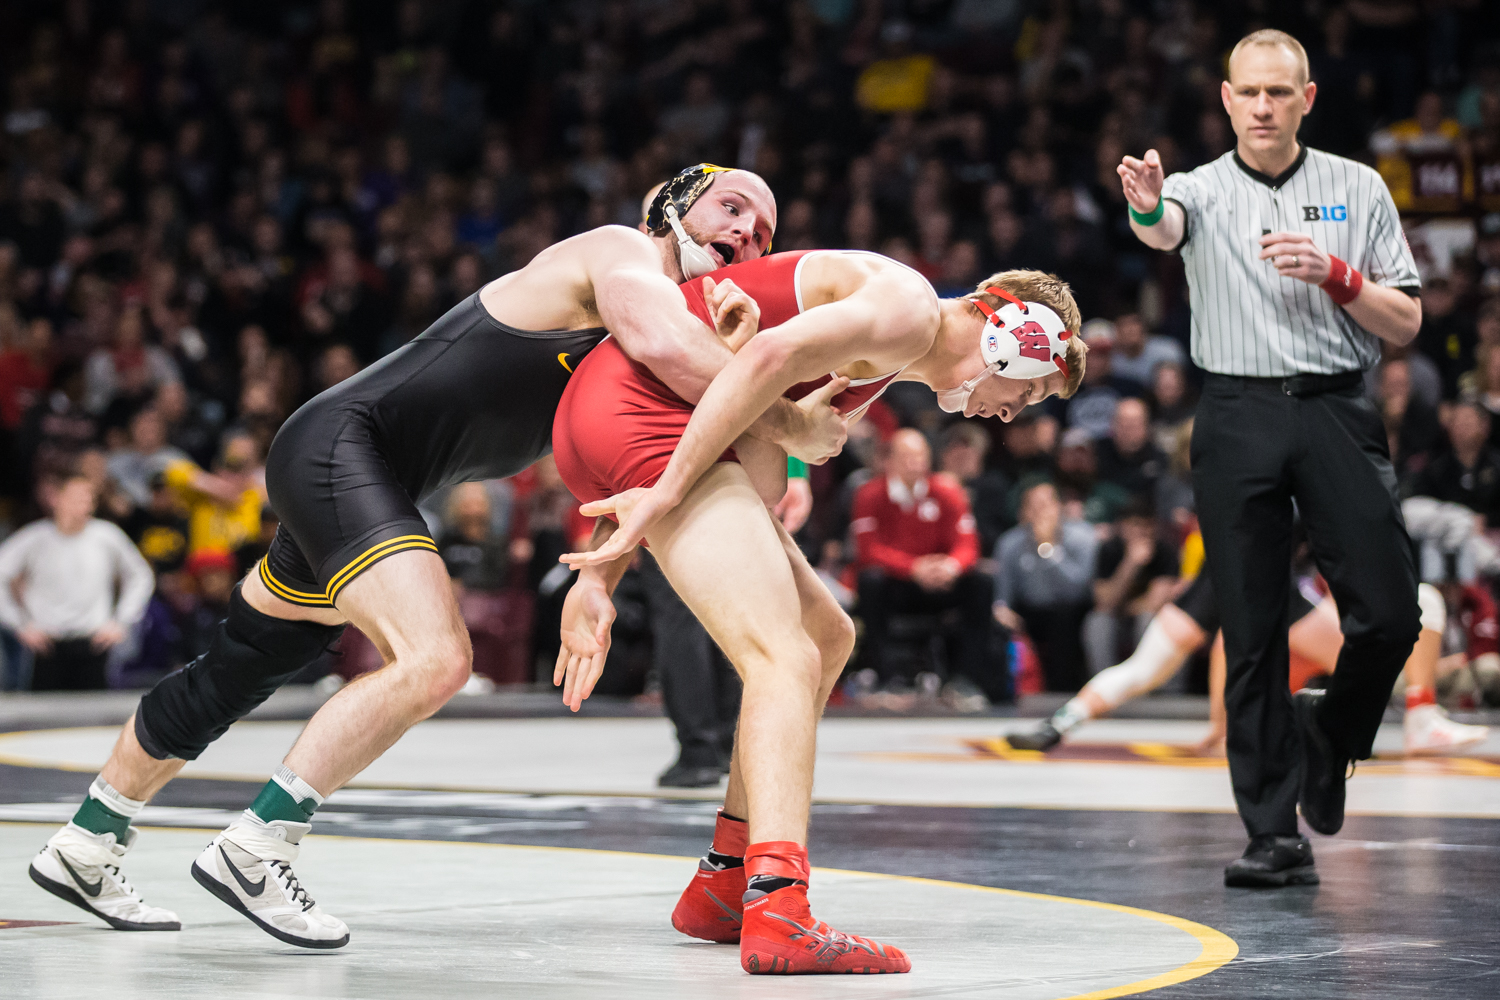 Iowa's 165-lb Alex Marinelli wrestles Wisconsin's Evan Wick during the second session of the 2019 Big Ten Wrestling Championships in Minneapolis, MN on Saturday, March 9, 2019. Marinelli won by decision, 2-1.